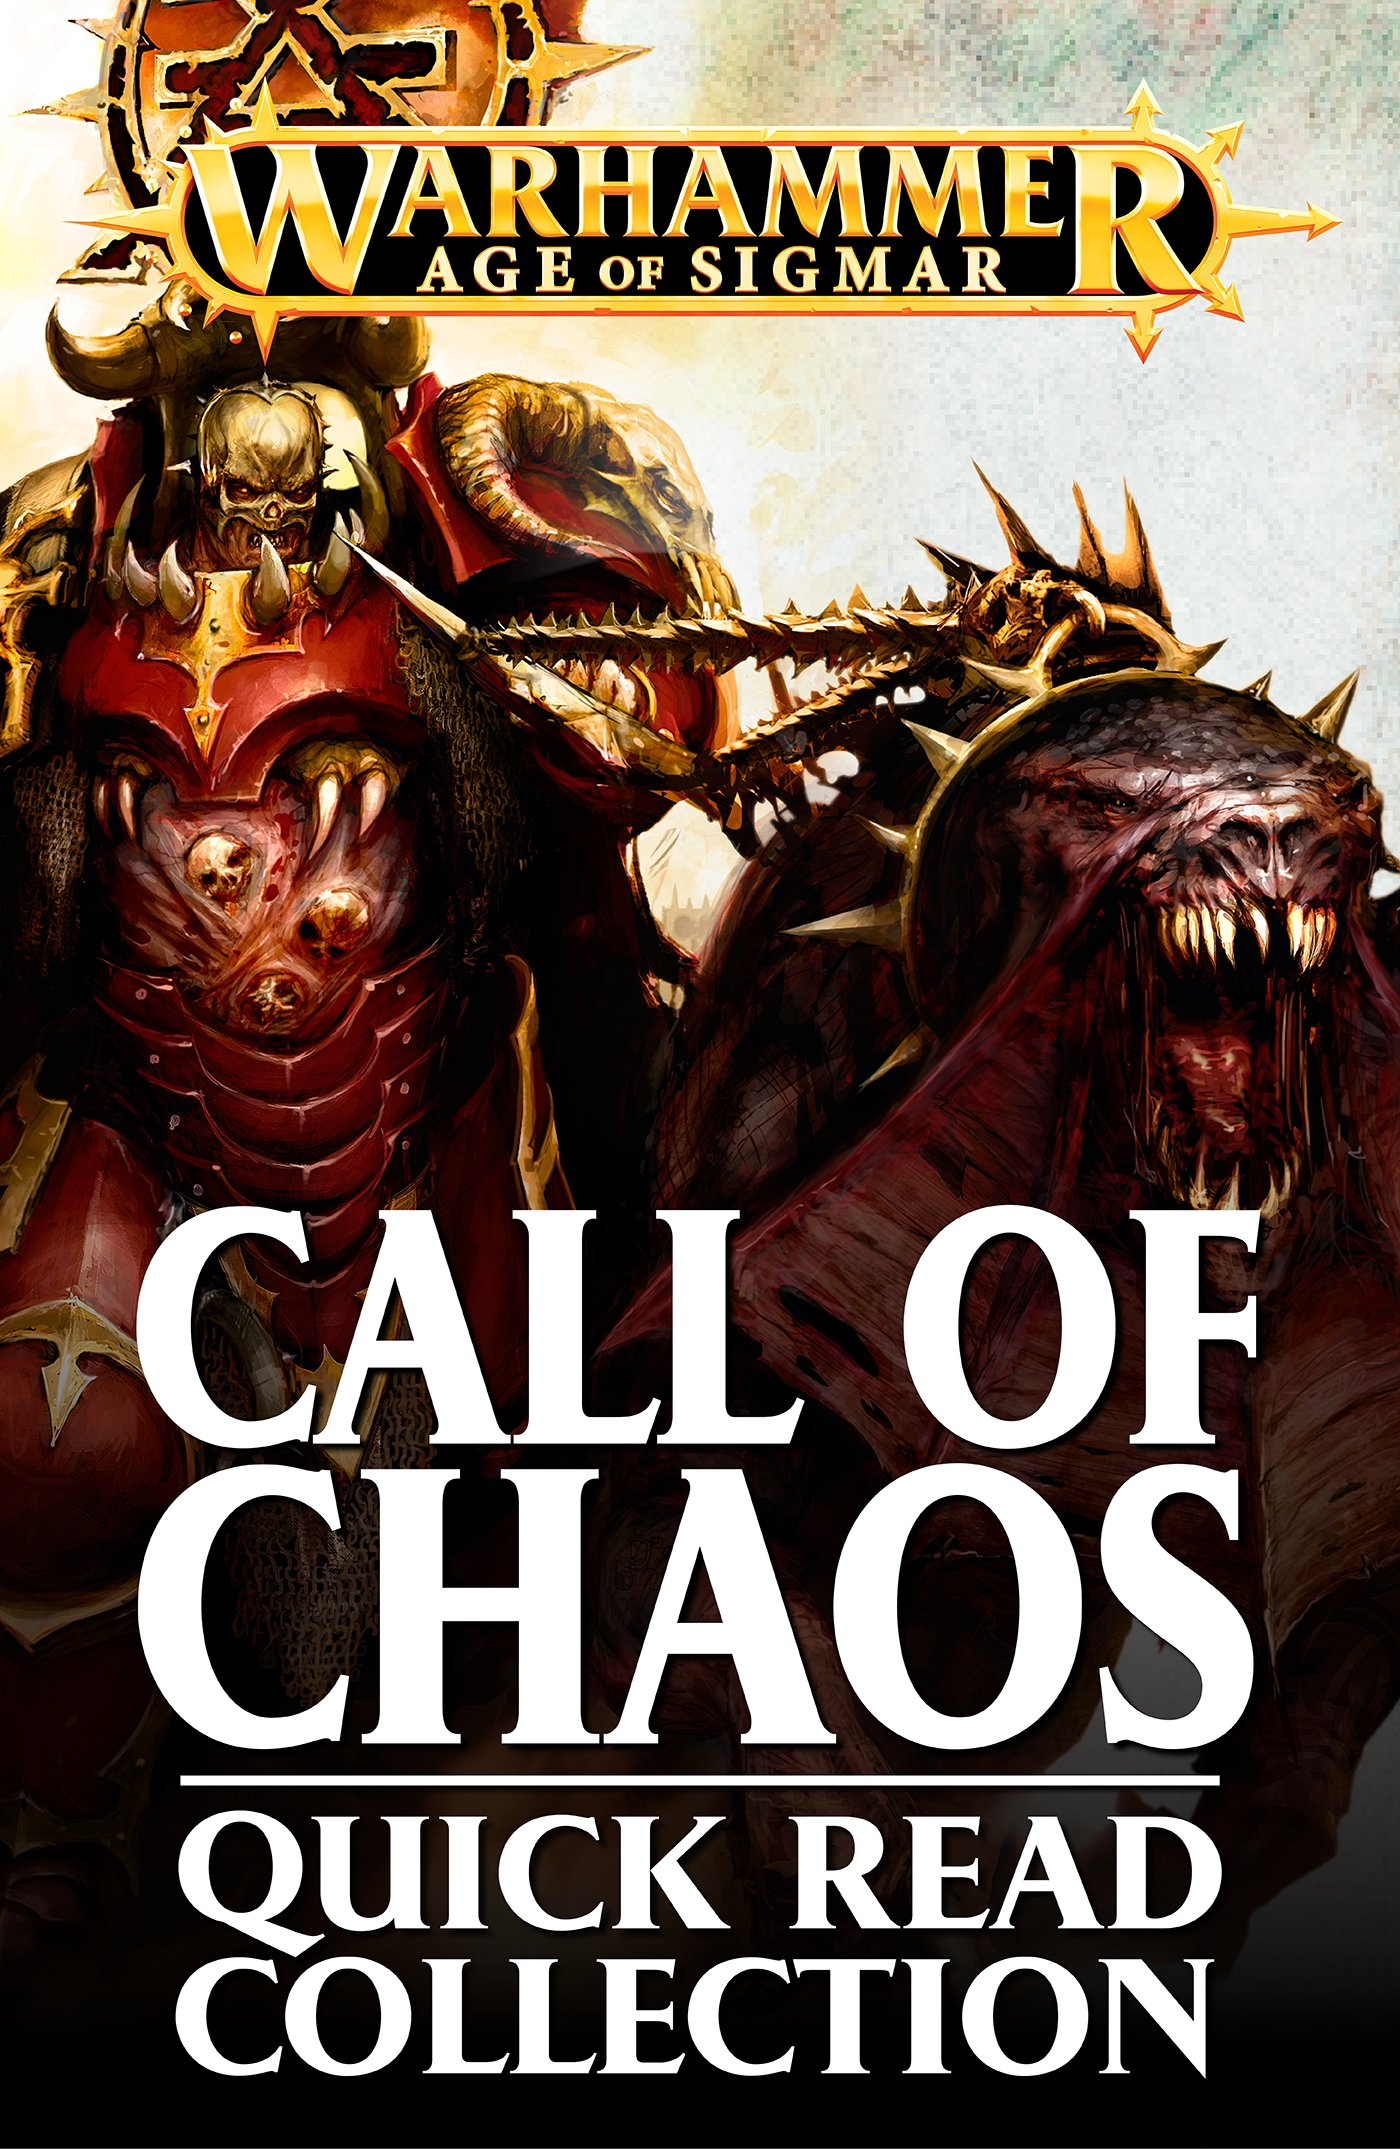 Call of Chaos Quick Read Collection: Age of Sigmar by